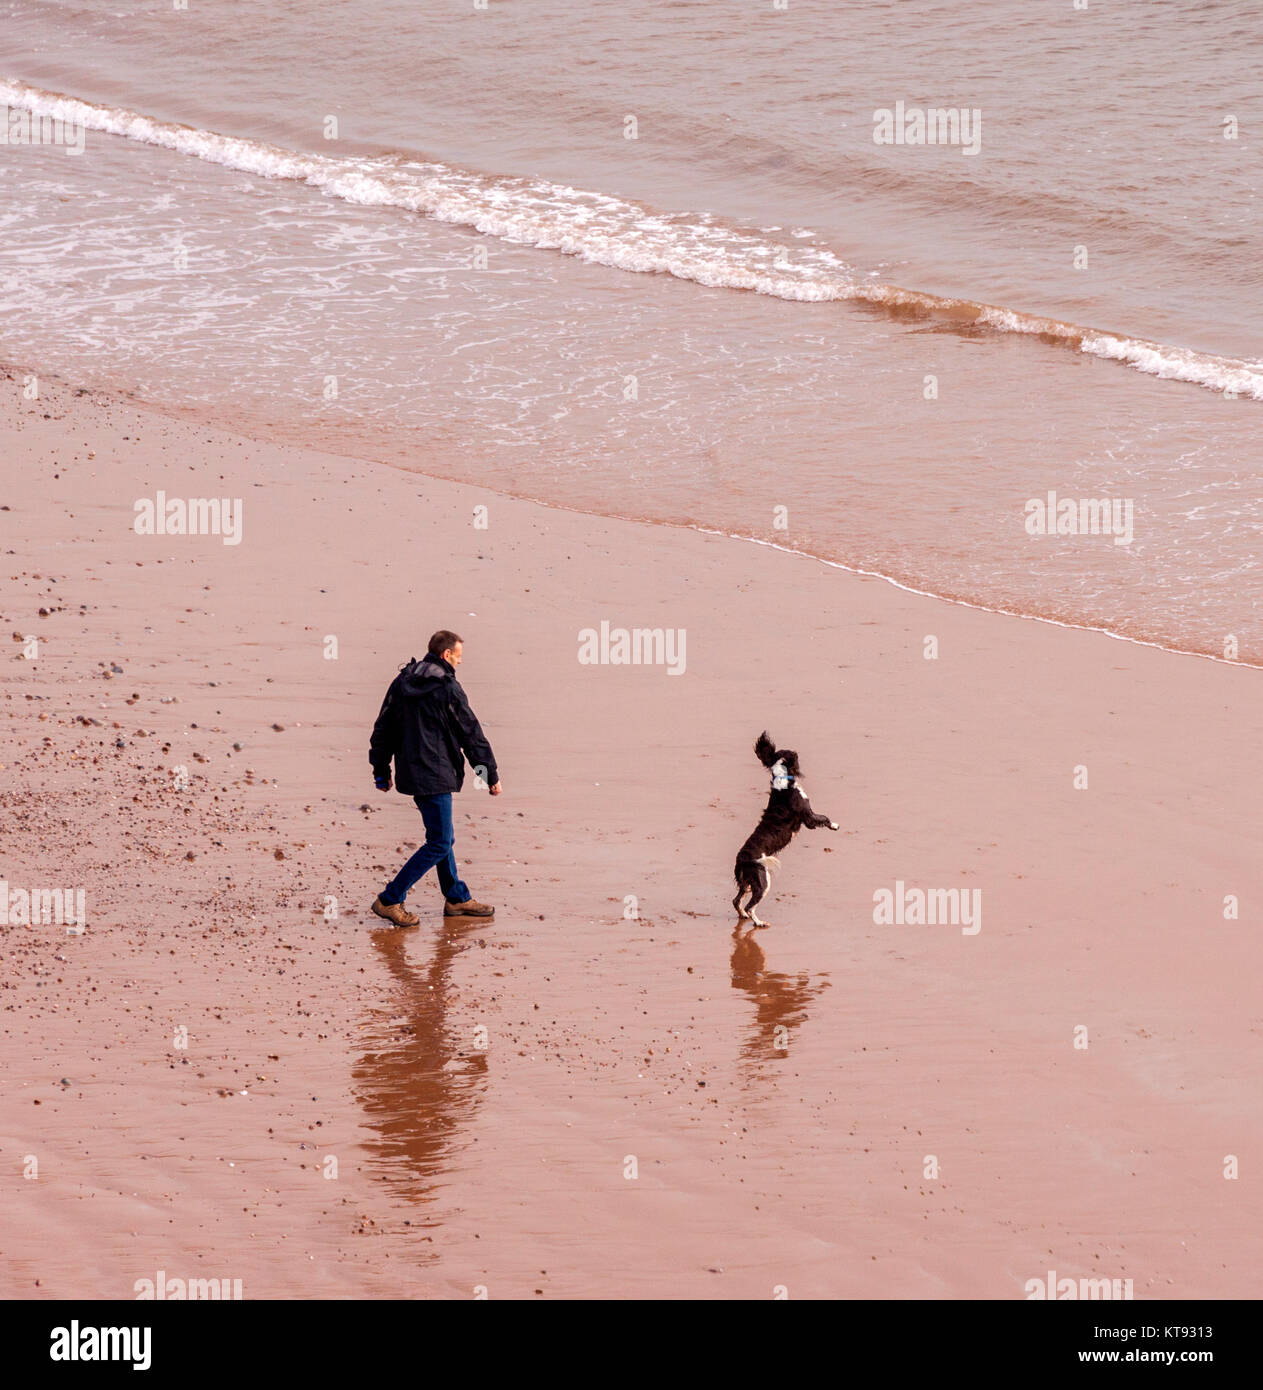 Sidmouth, Devon. 23rd Dec, 2017. UK Weather: A man walks his dogs on the beach atSidmouth, Devon on a mild and calm - Stock Image